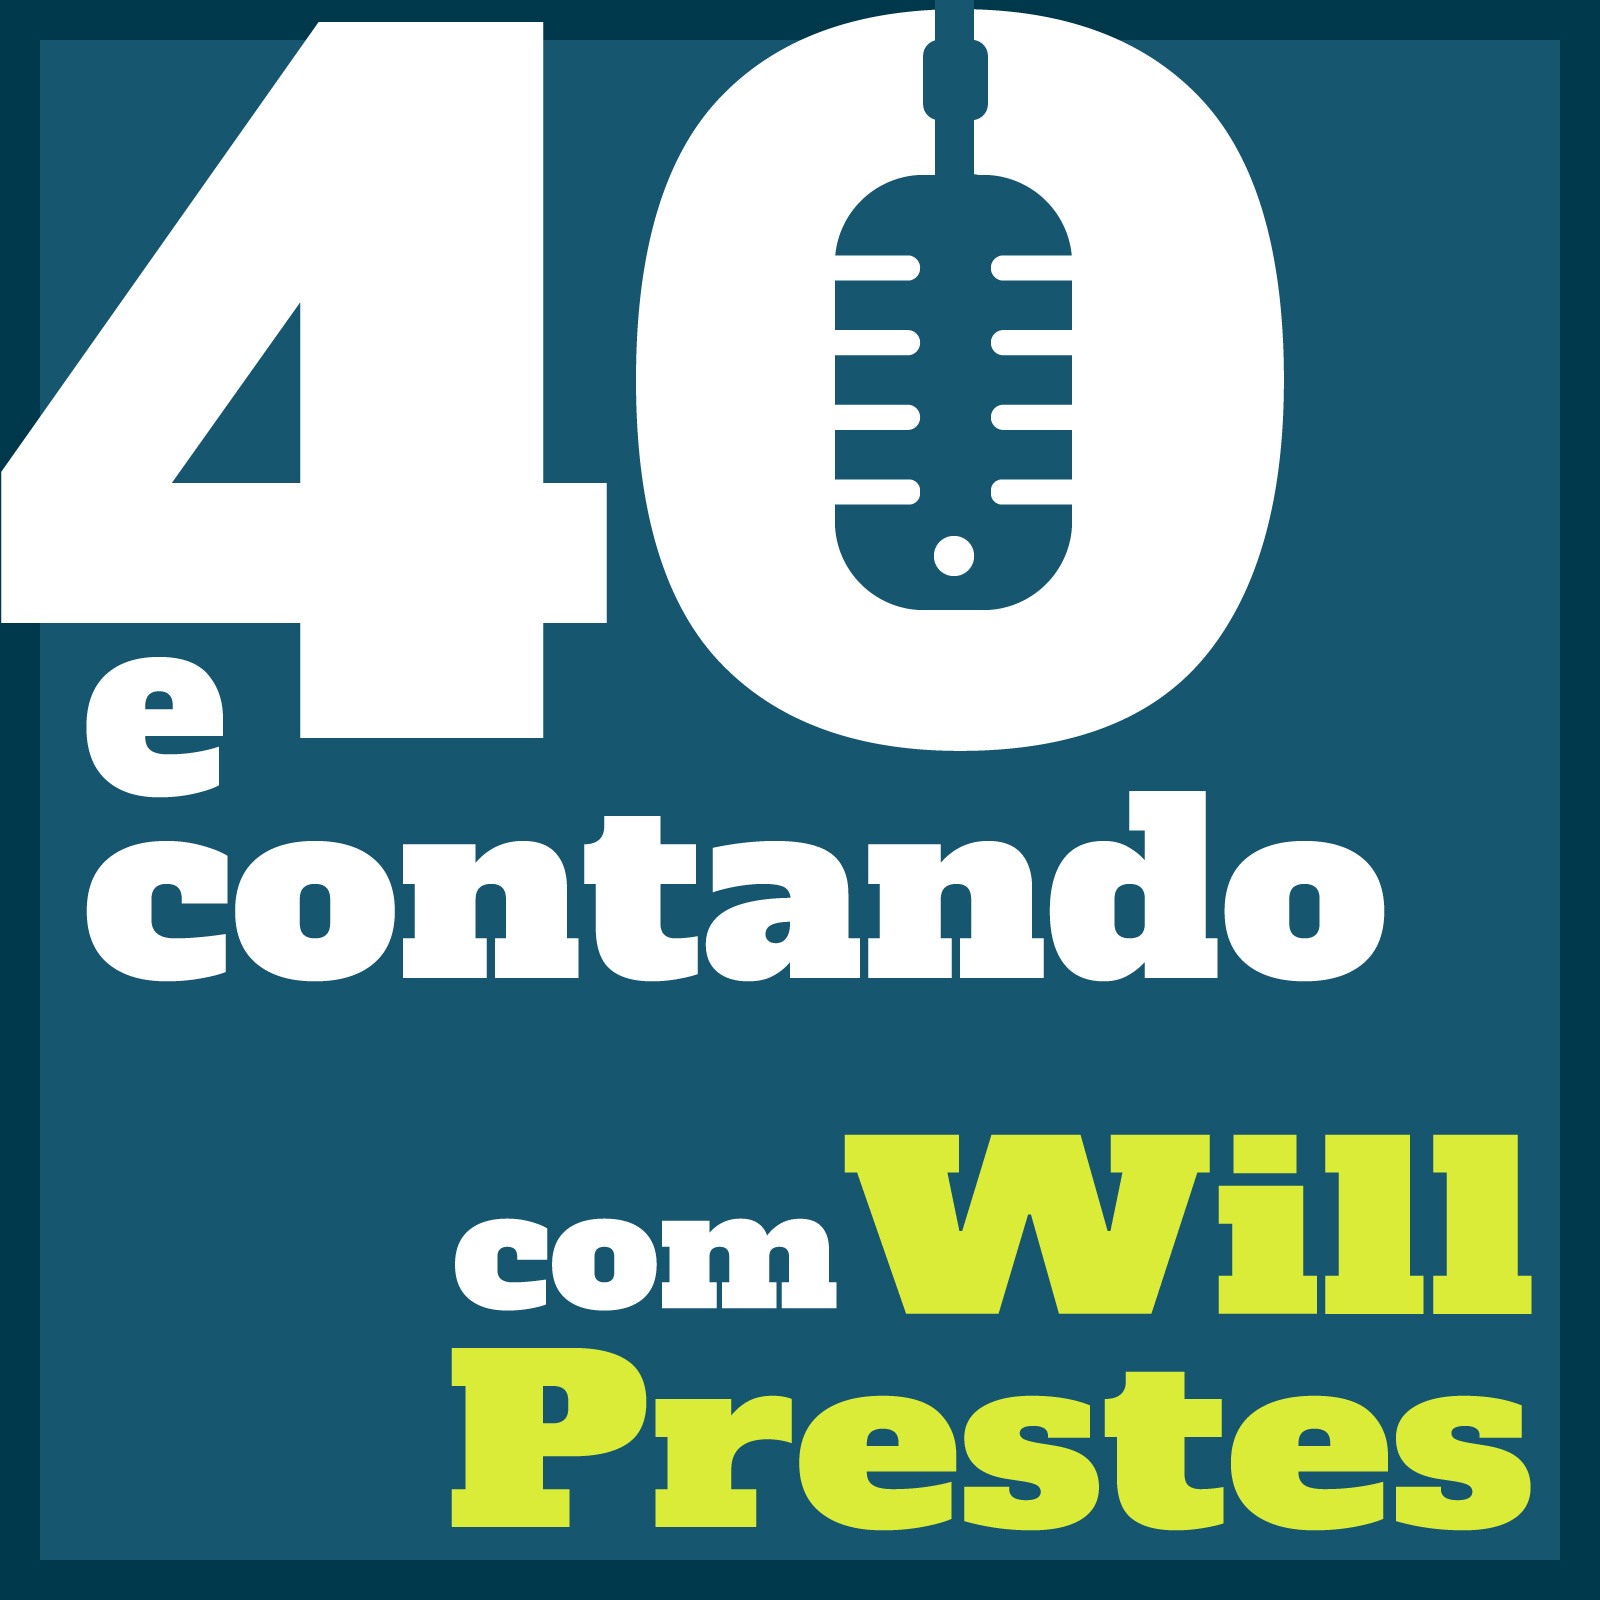 Show artwork for 40 e contando